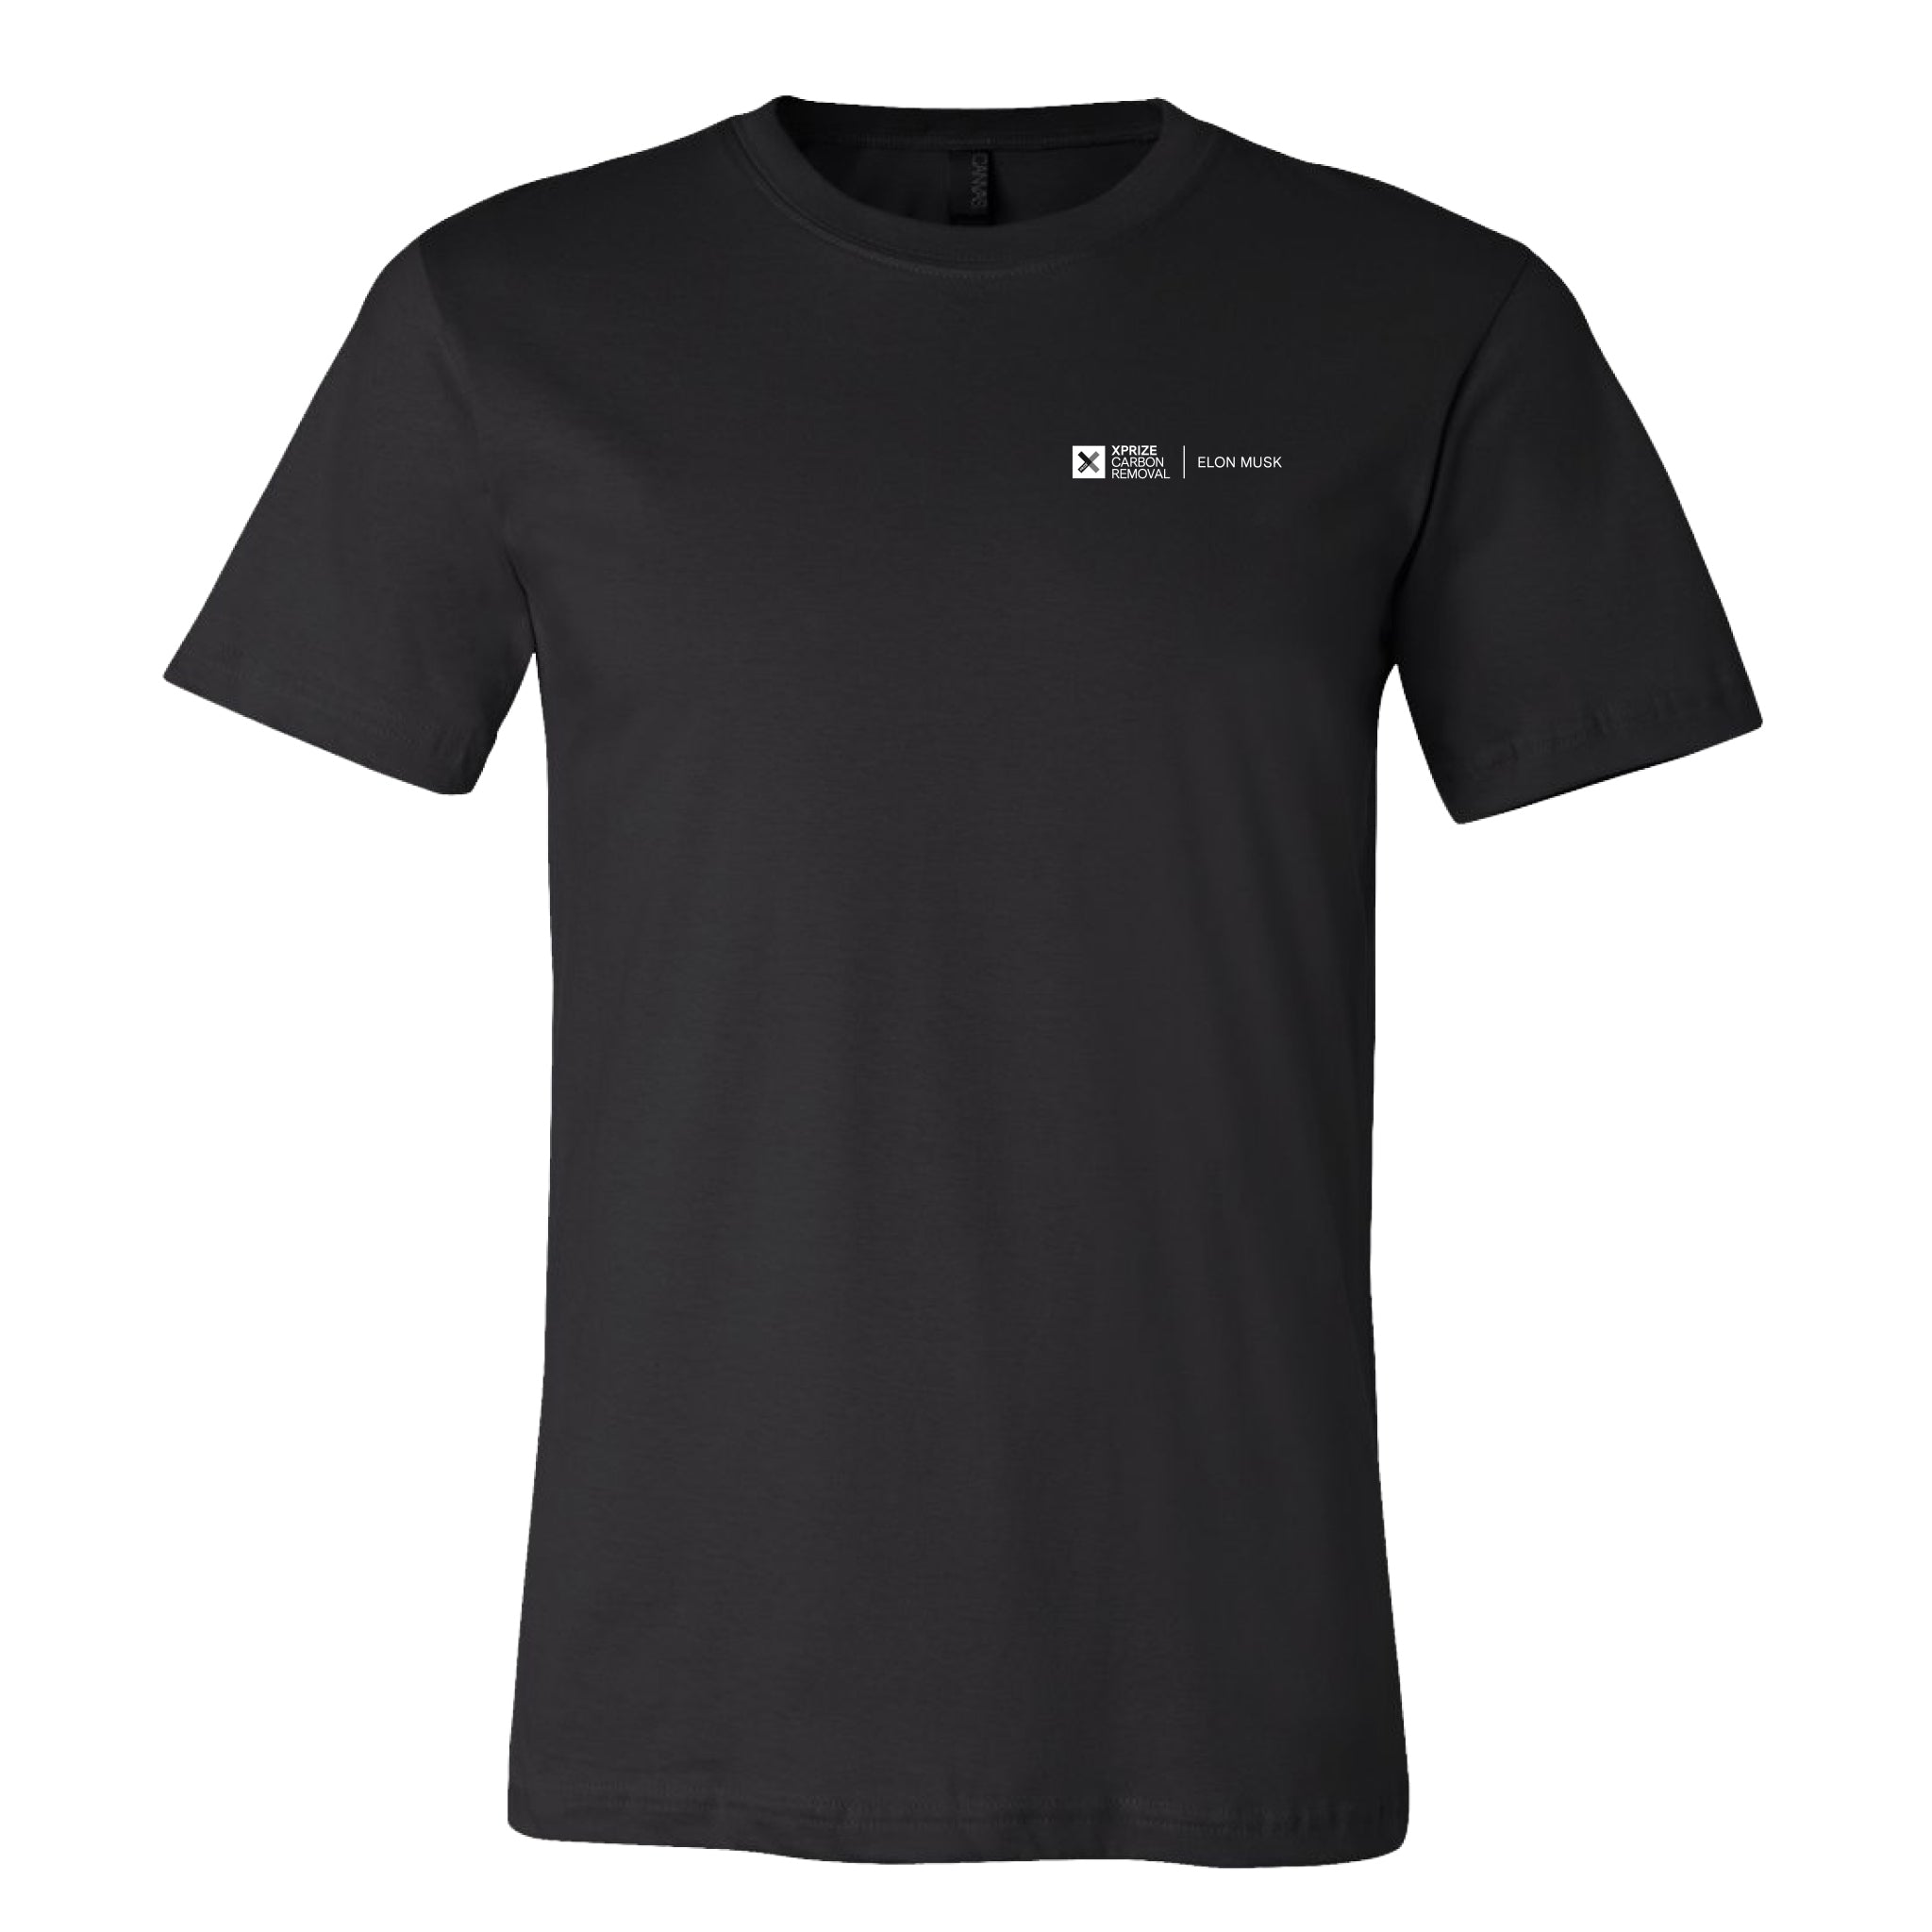 10 GIGATON TEE - CARBON BLACK